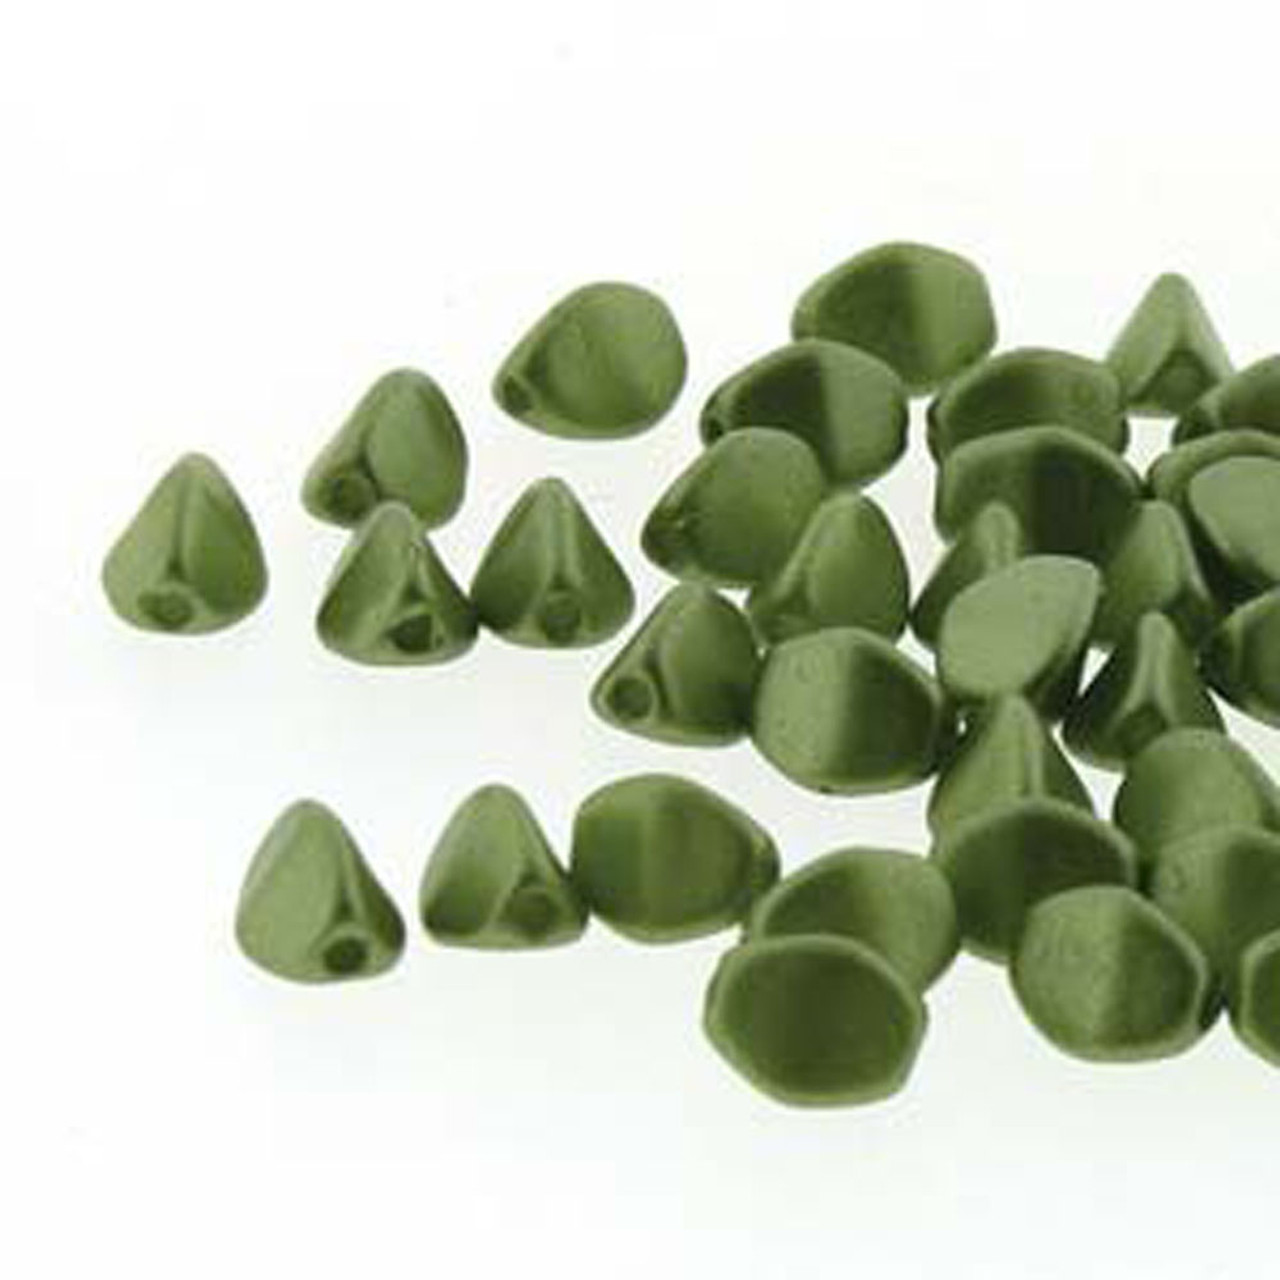 Opaque Olive Bead Soup Beads Pressed Glass Olivine Pinch Beads Czech Glass Pinch Beads